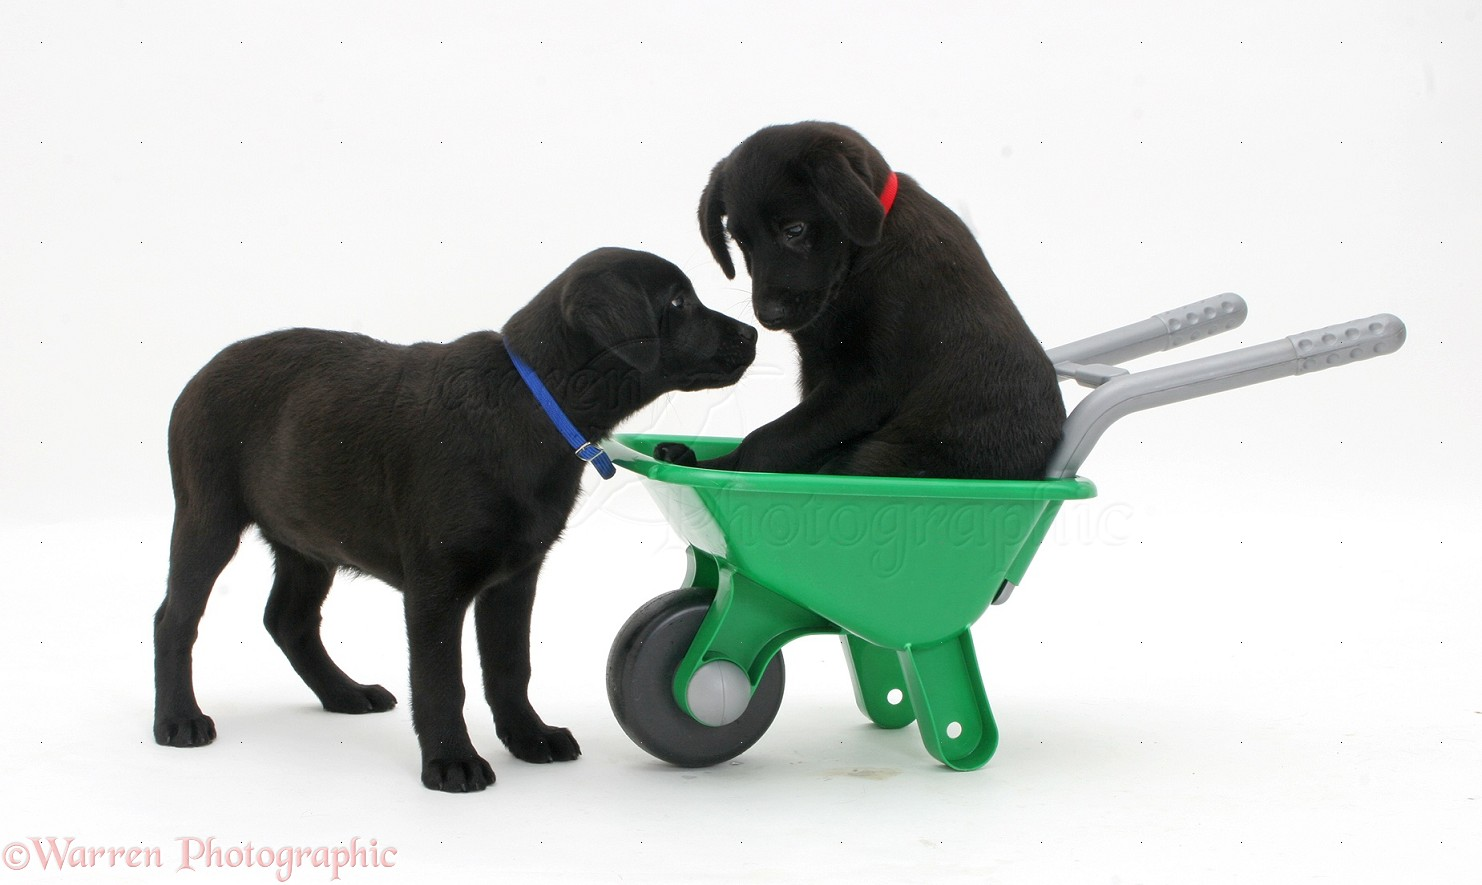 Wp35950 two black labrador retriever pups playing with a plastic toy